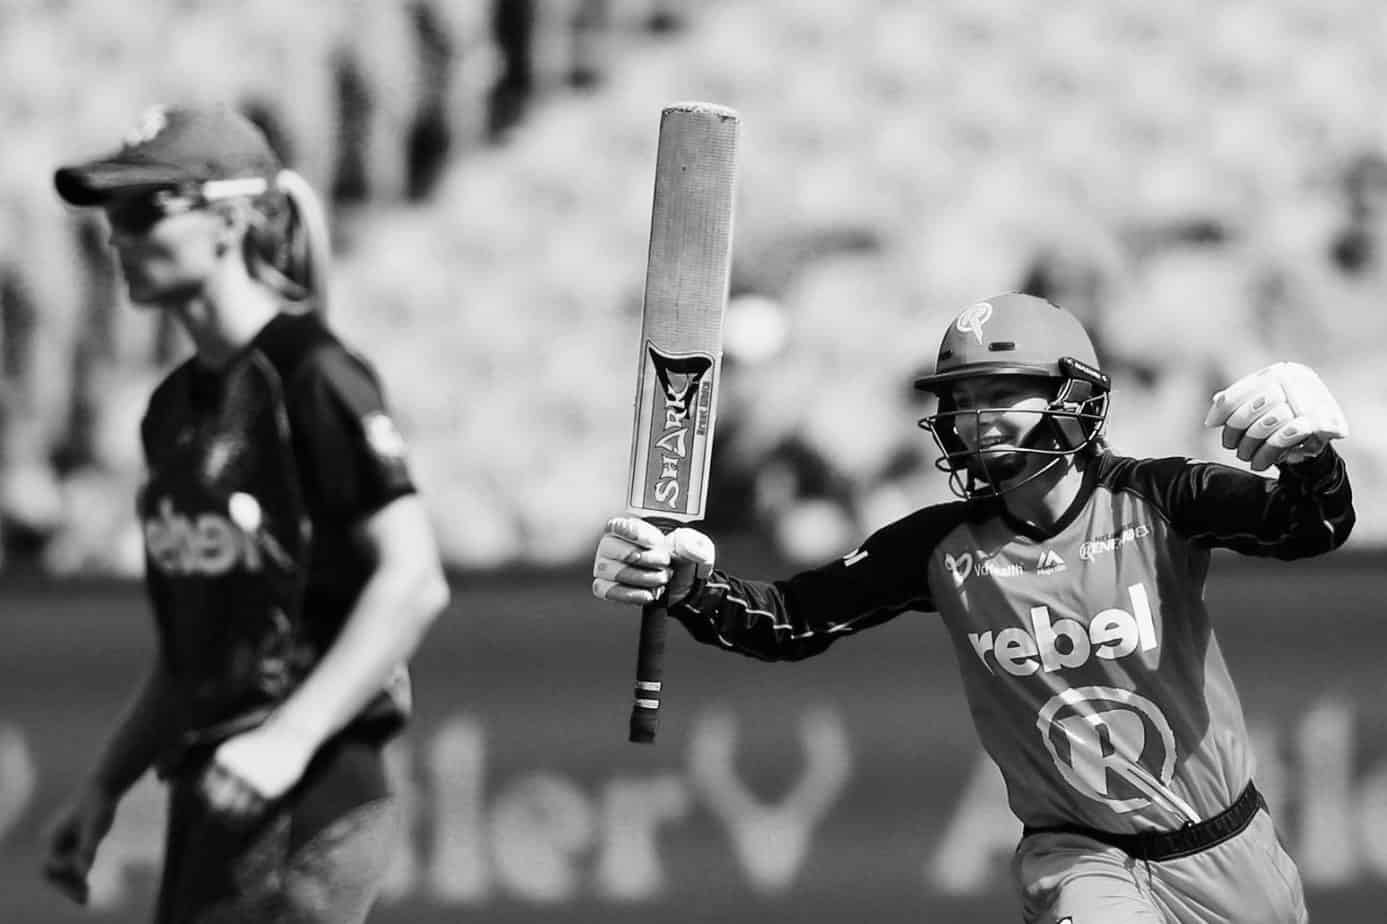 WBBL player profile: Danni Wyatt